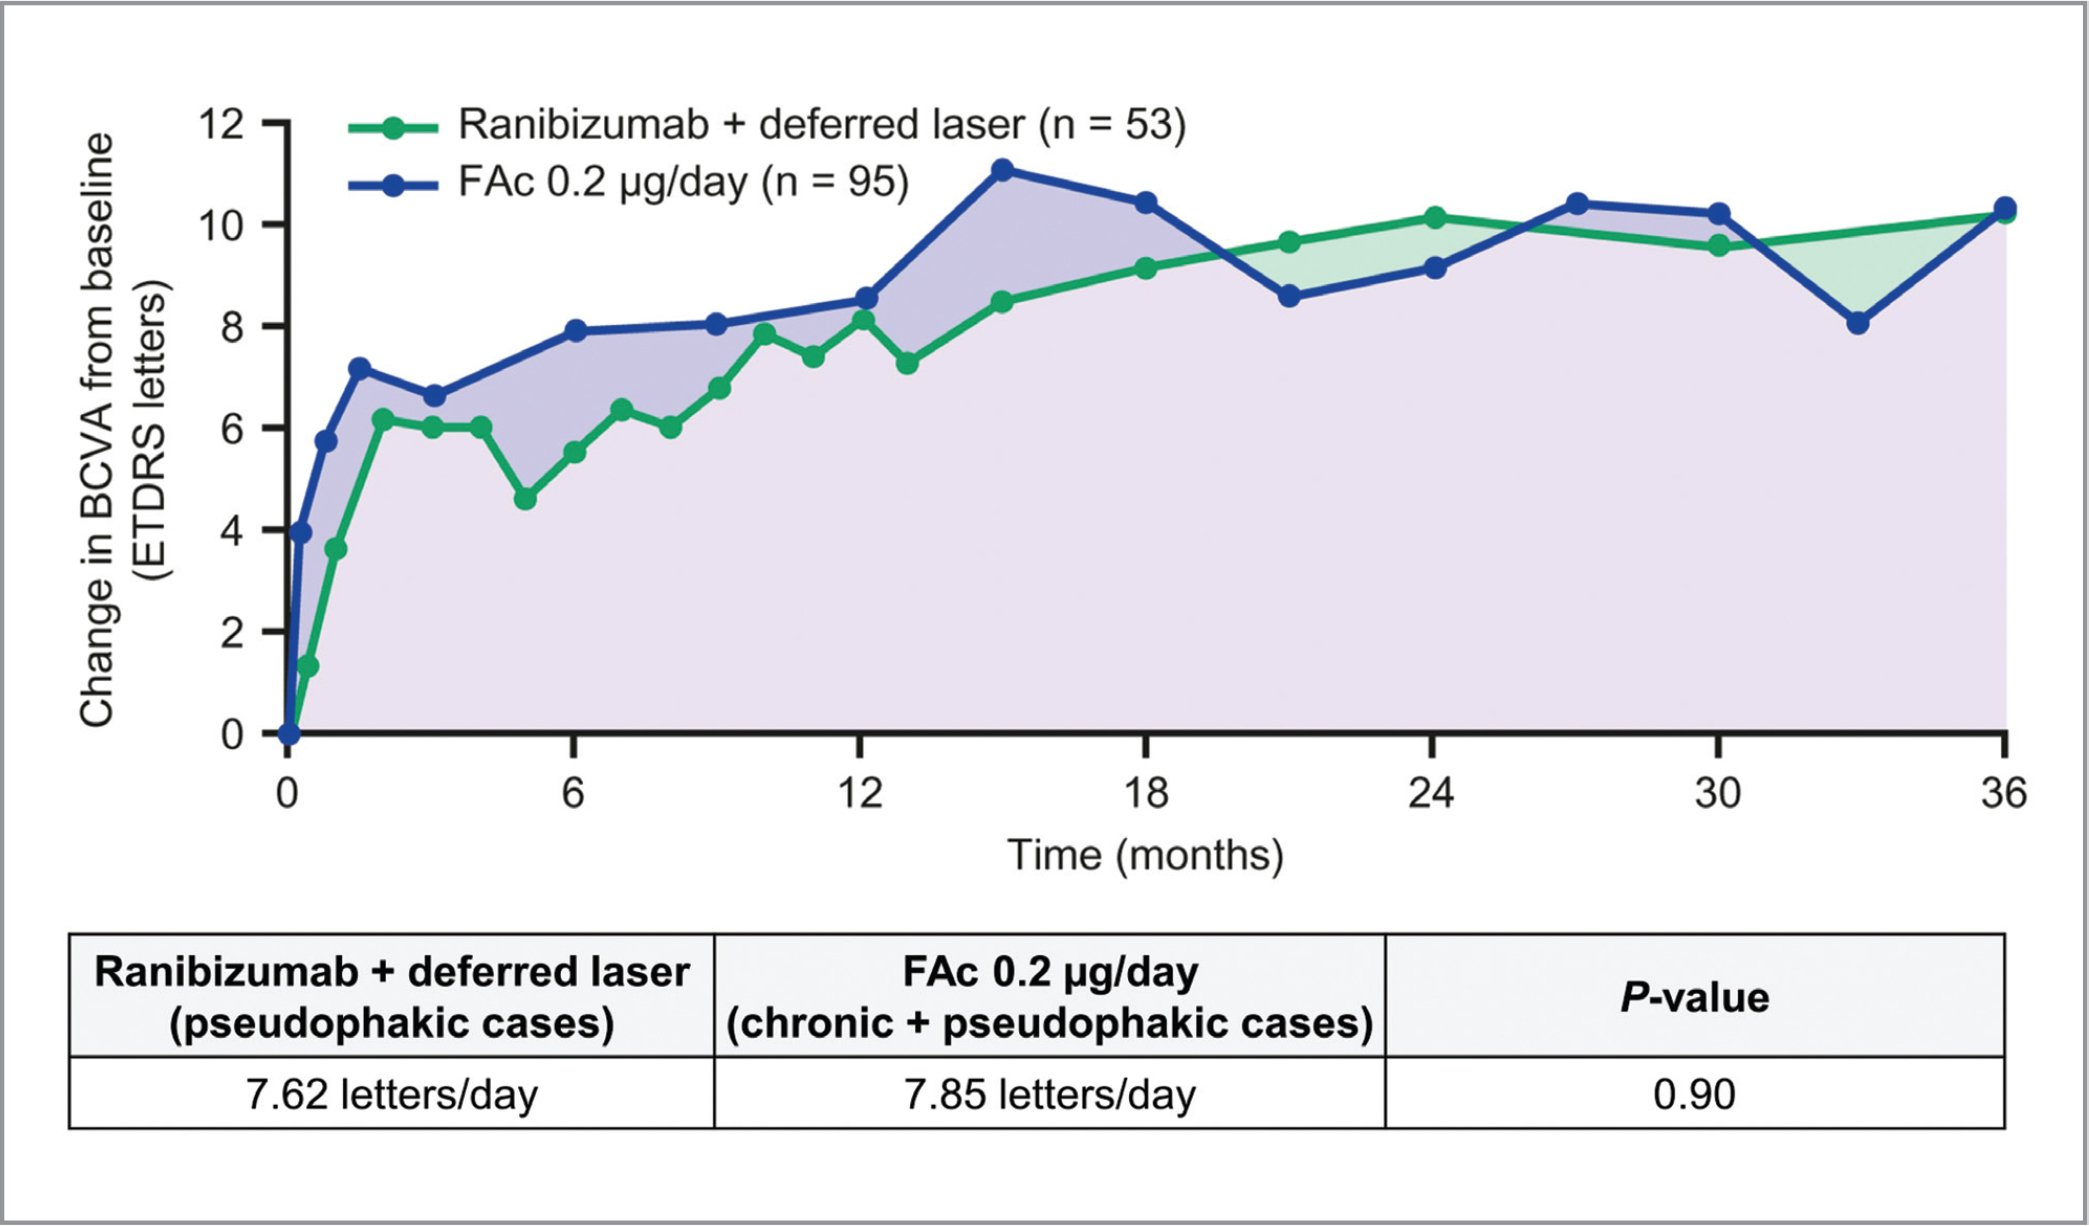 Visual Acuity Outcomes In Diabetic Macular Edema With Fluocinolone Acetonide 0 2 G Day Versus